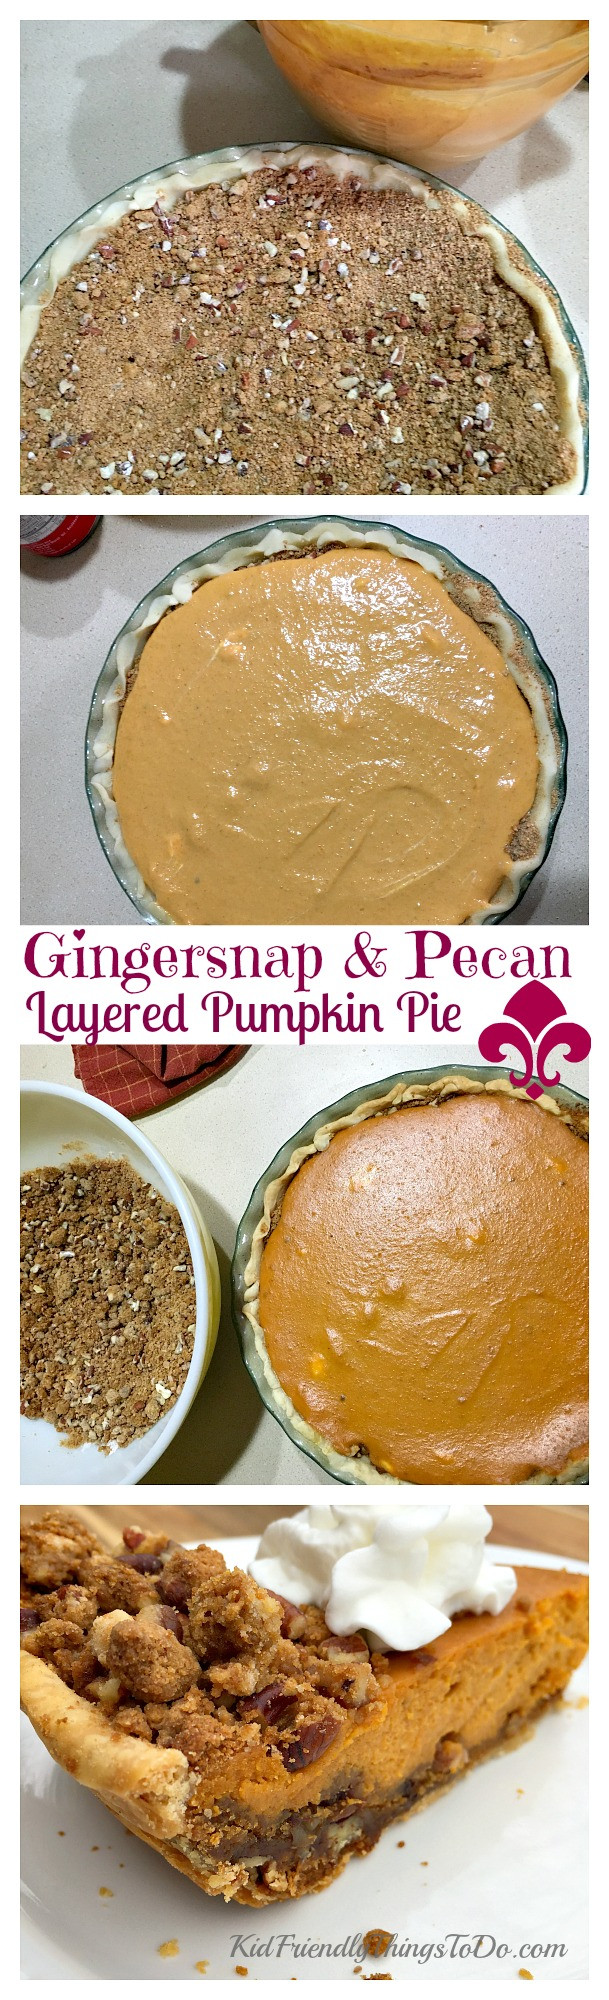 Does Pumpkin Pie Have To Be Refrigerated  Gingersnap and Pecan Layered Pumpkin Pie Recipe